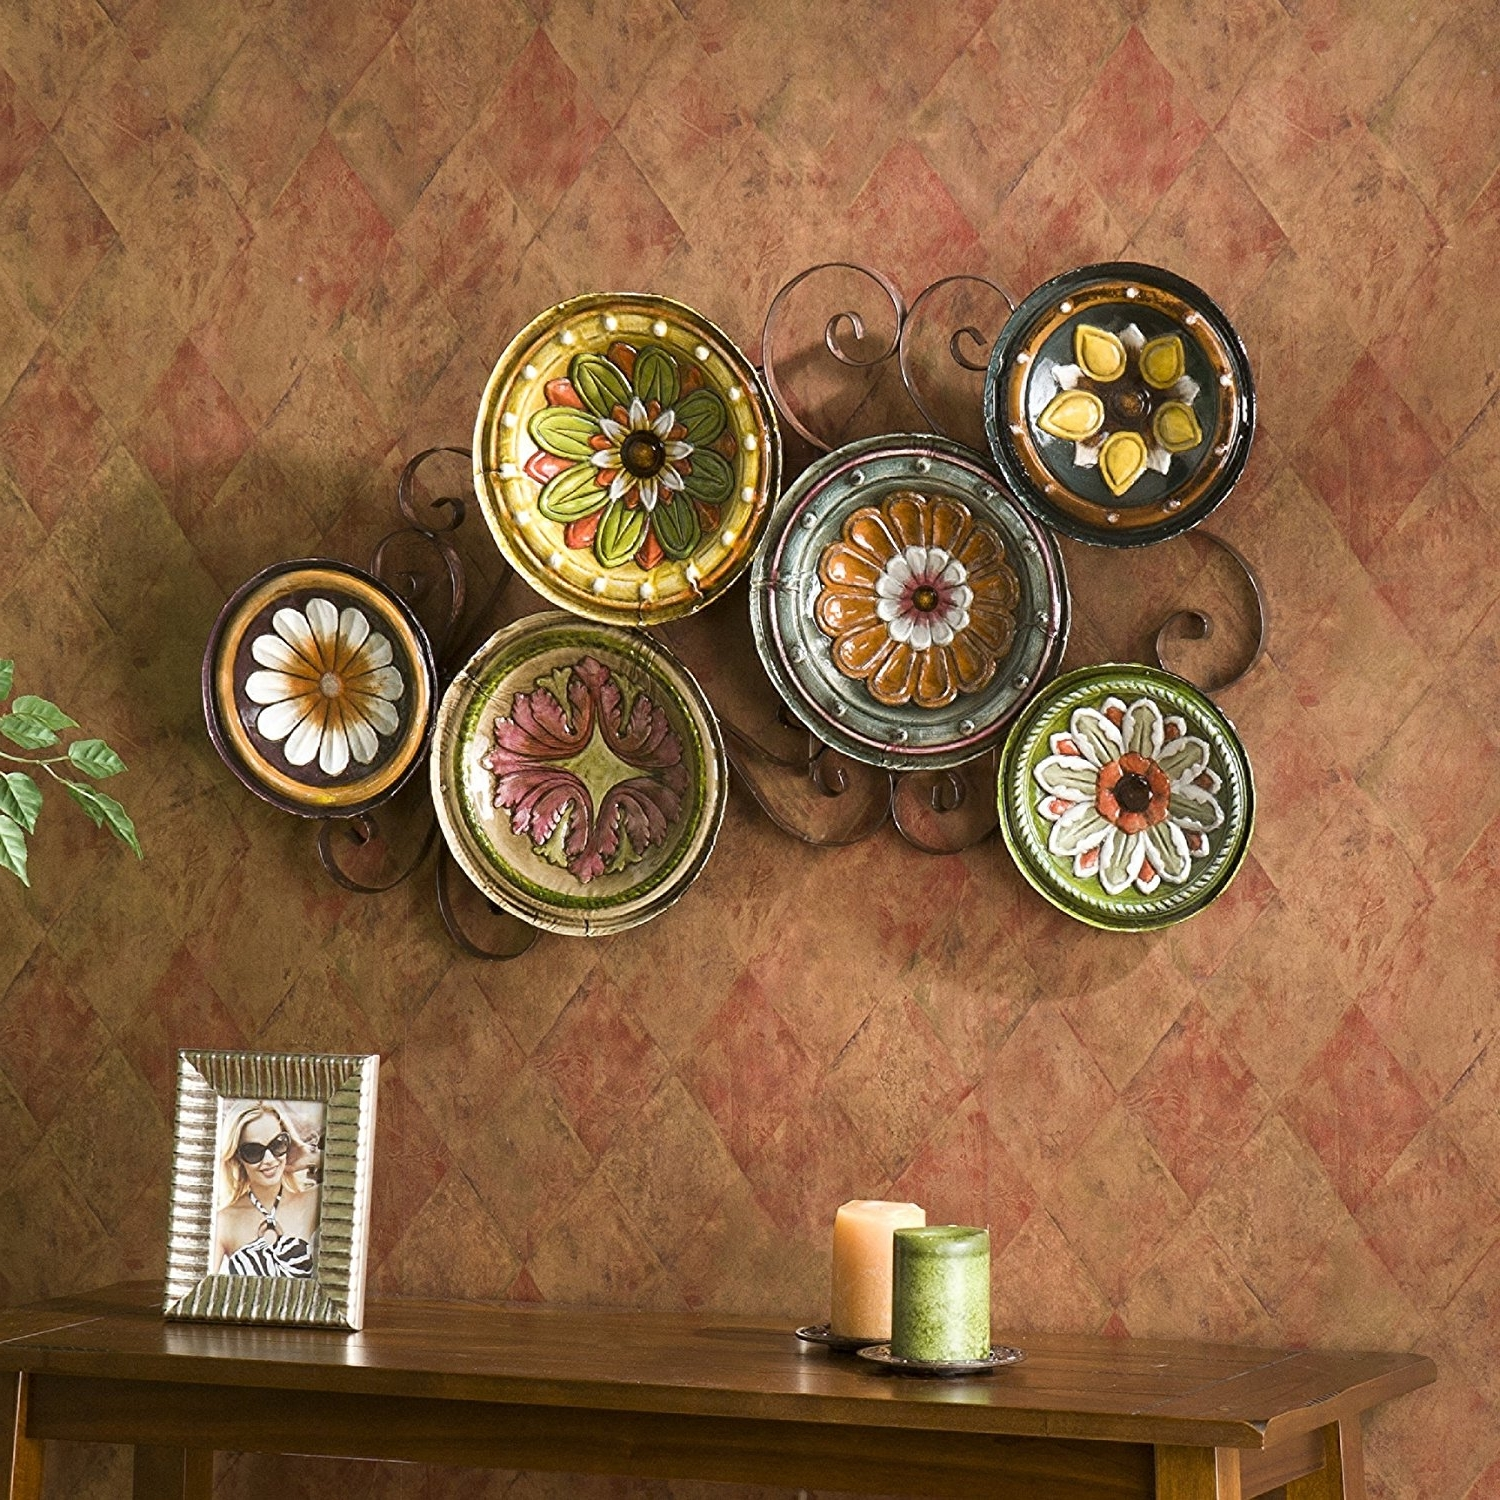 Popular Midnight Italian Plates Wall Art Throughout Amazon: Sei Scattered Italian Plates Wall Art: Wall Sculptures (View 12 of 15)